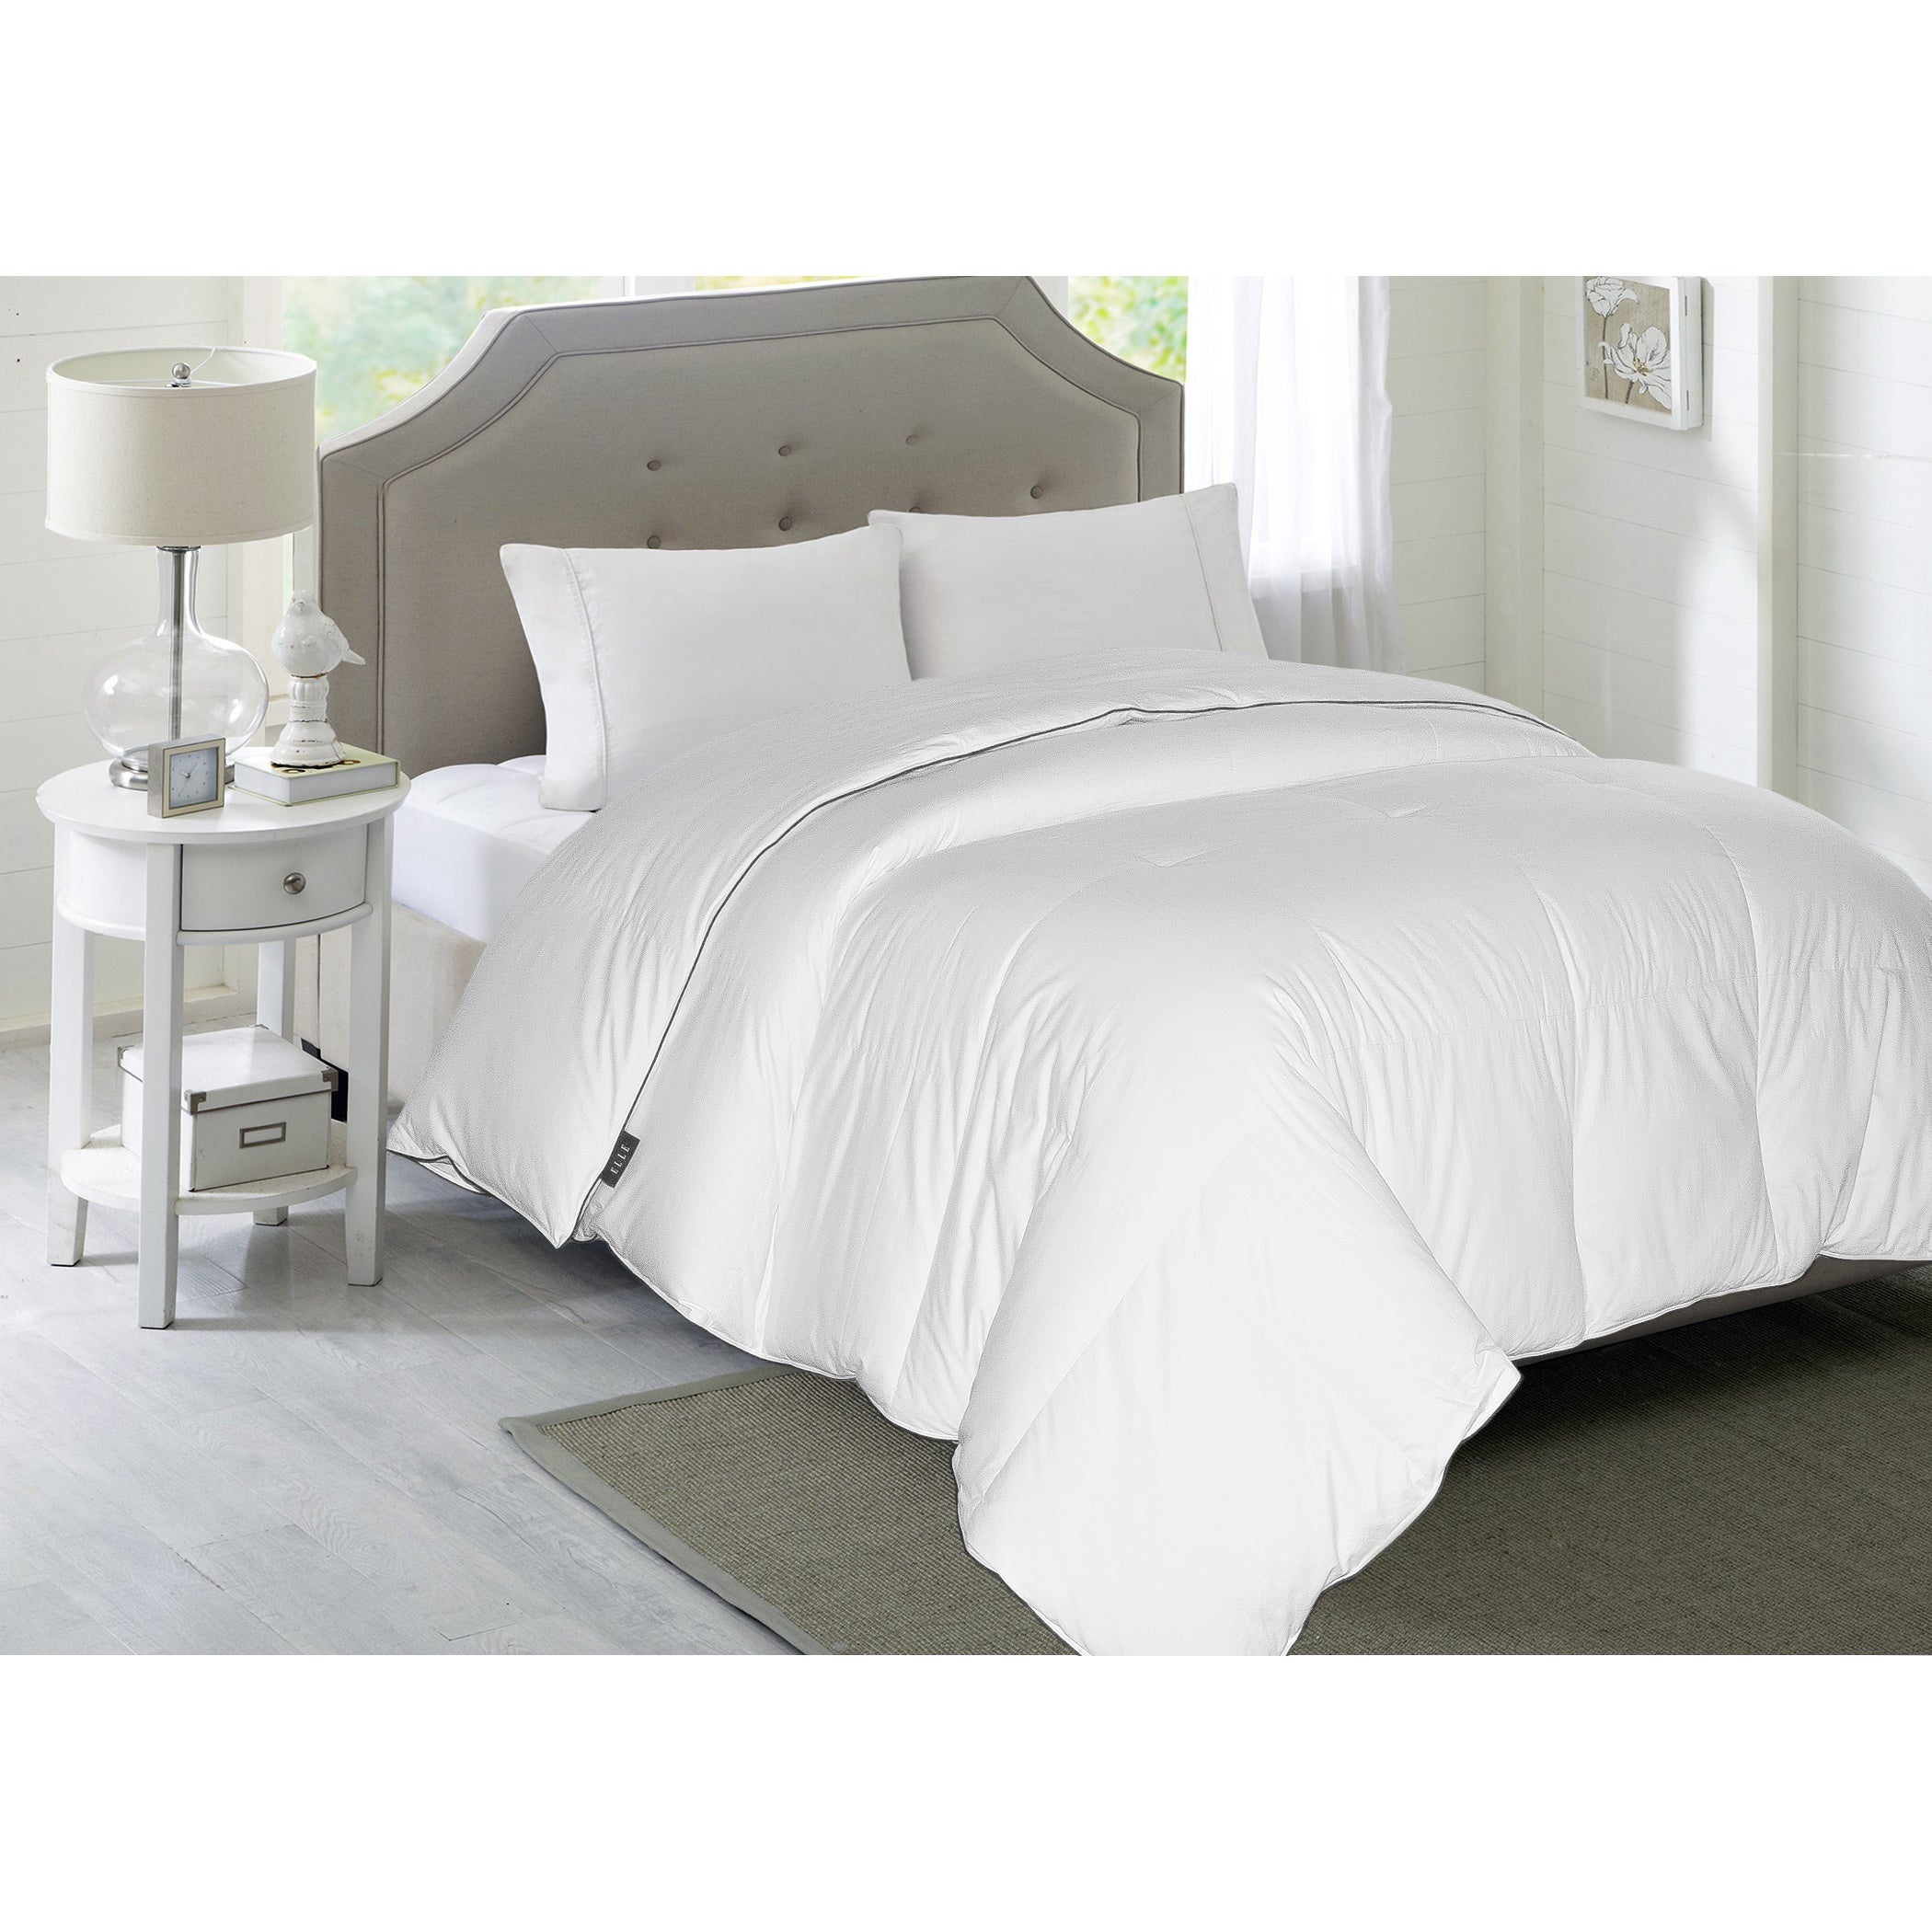 hotel free a white to luxury overstock madison how comforter buy today down bath product suite shipping bedding